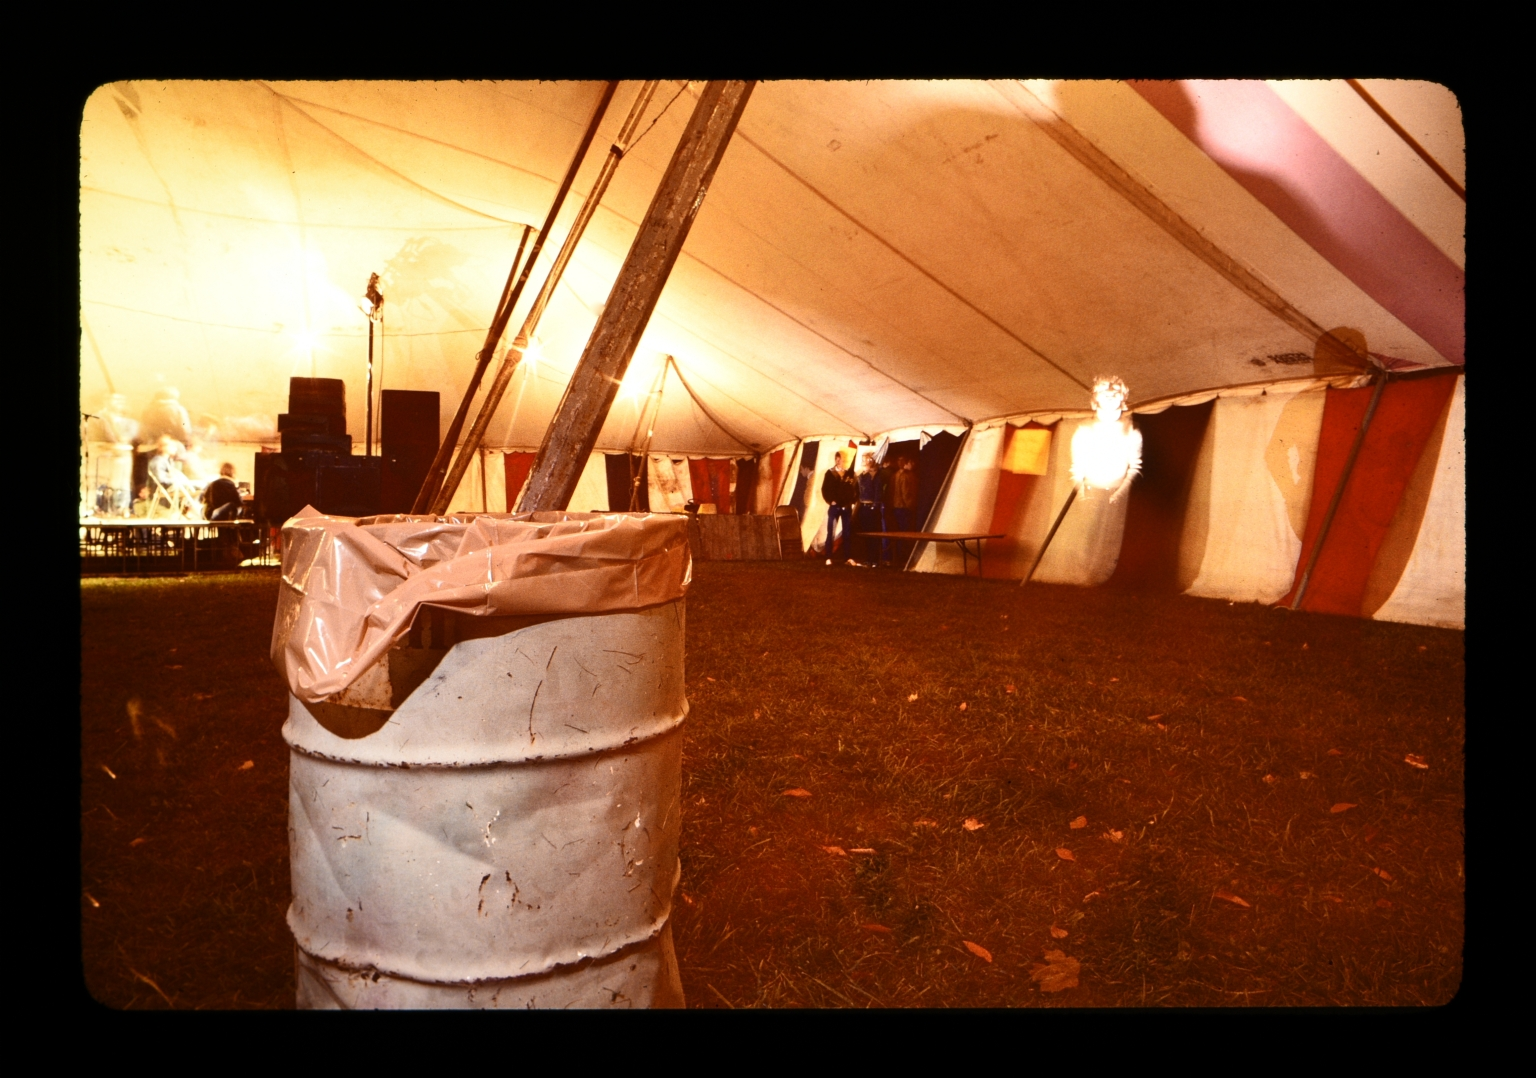 Inside of event tent